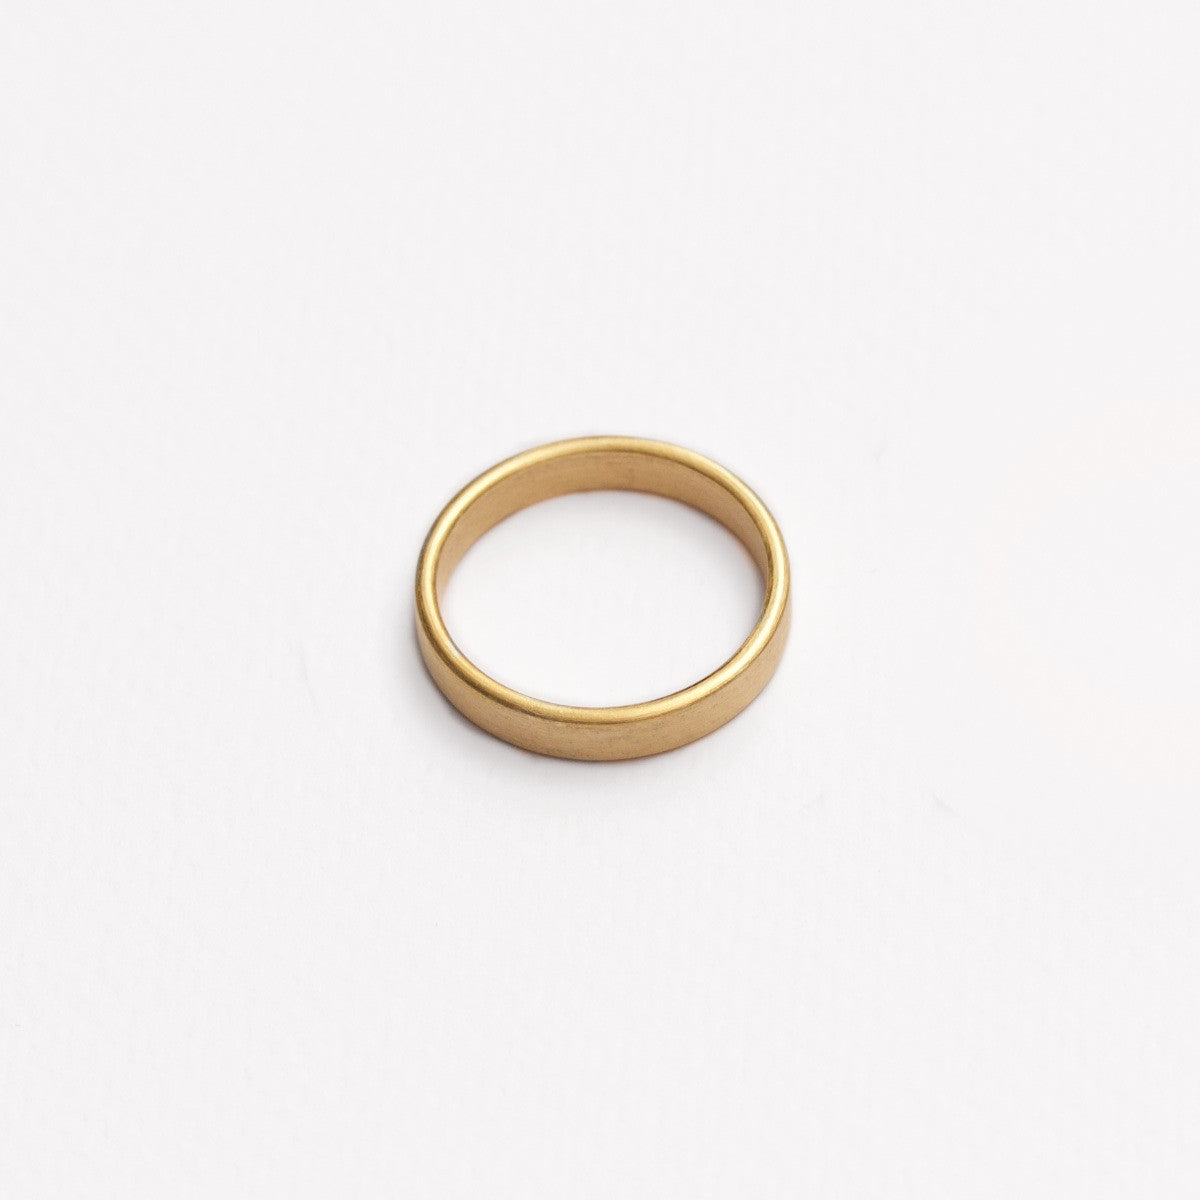 'Obround' Fairtrade Gold Wedding Ring